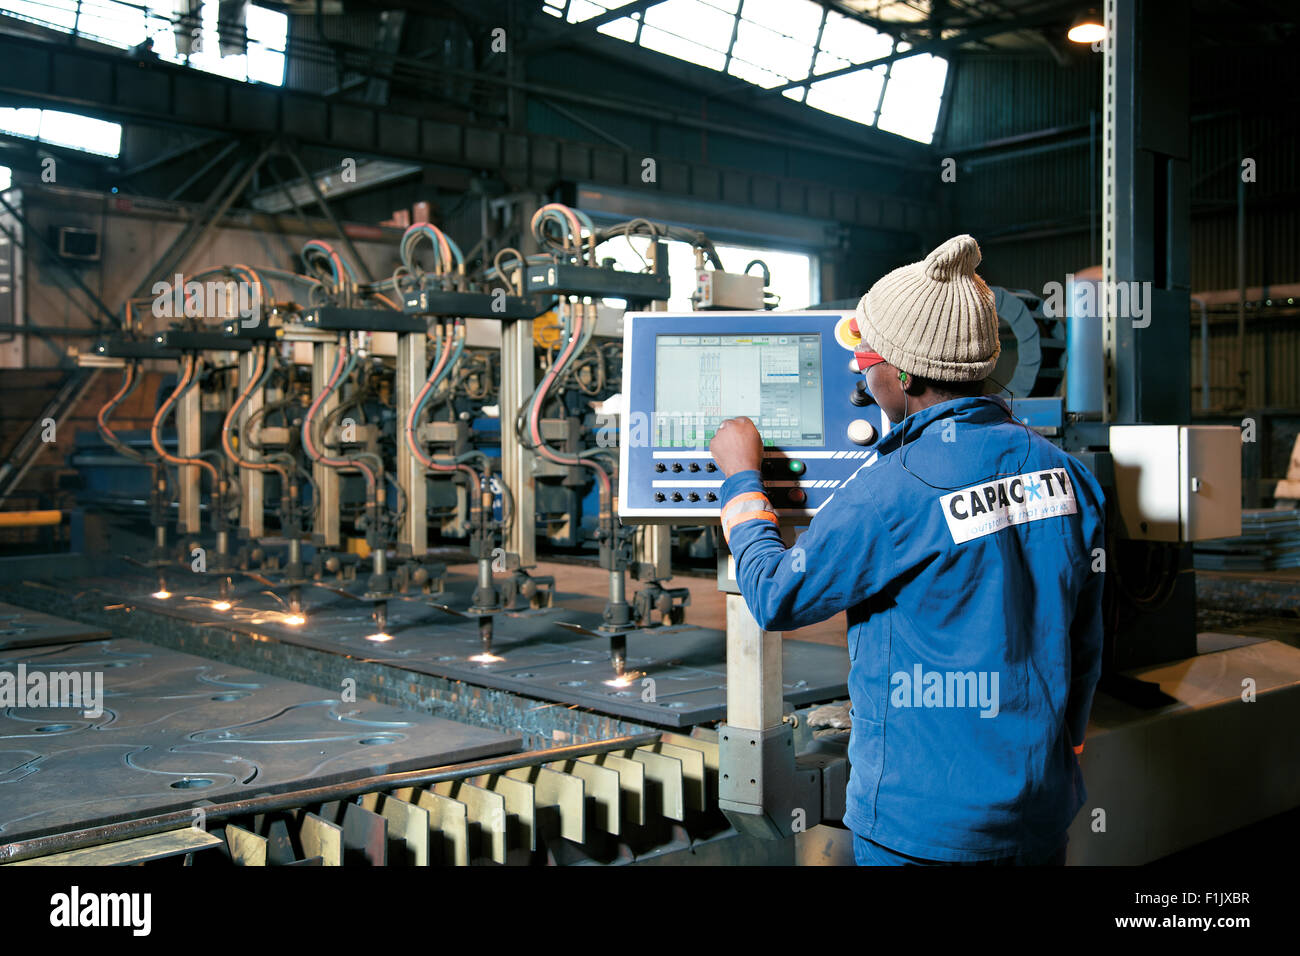 Laser Cutting of component parts, Bell Equipment, Richards Bay - Stock Image